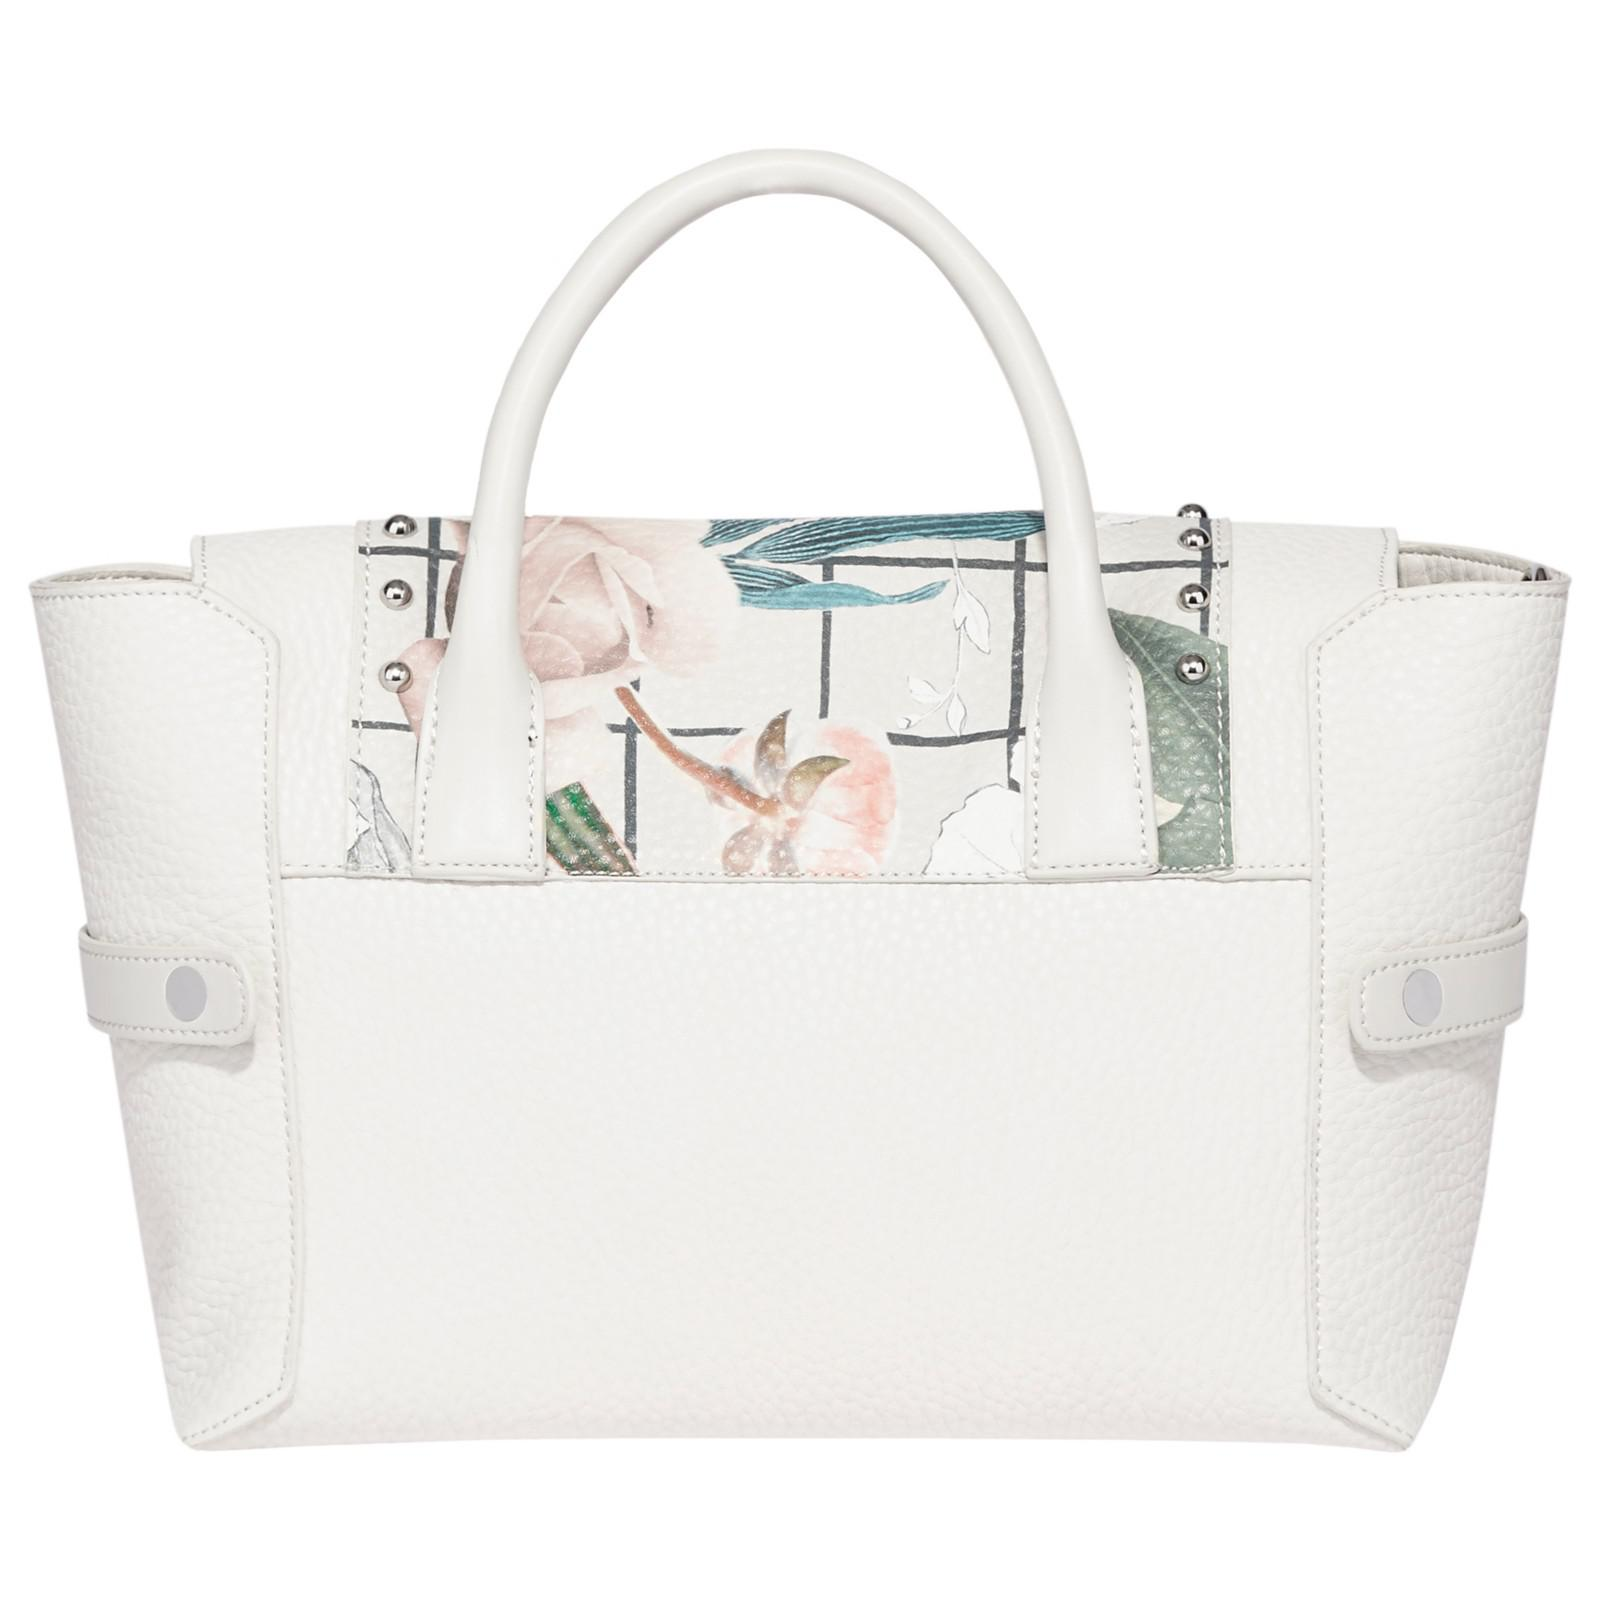 Fiorelli Synthetic Barbican Small Flapover Patterned Tote Bag